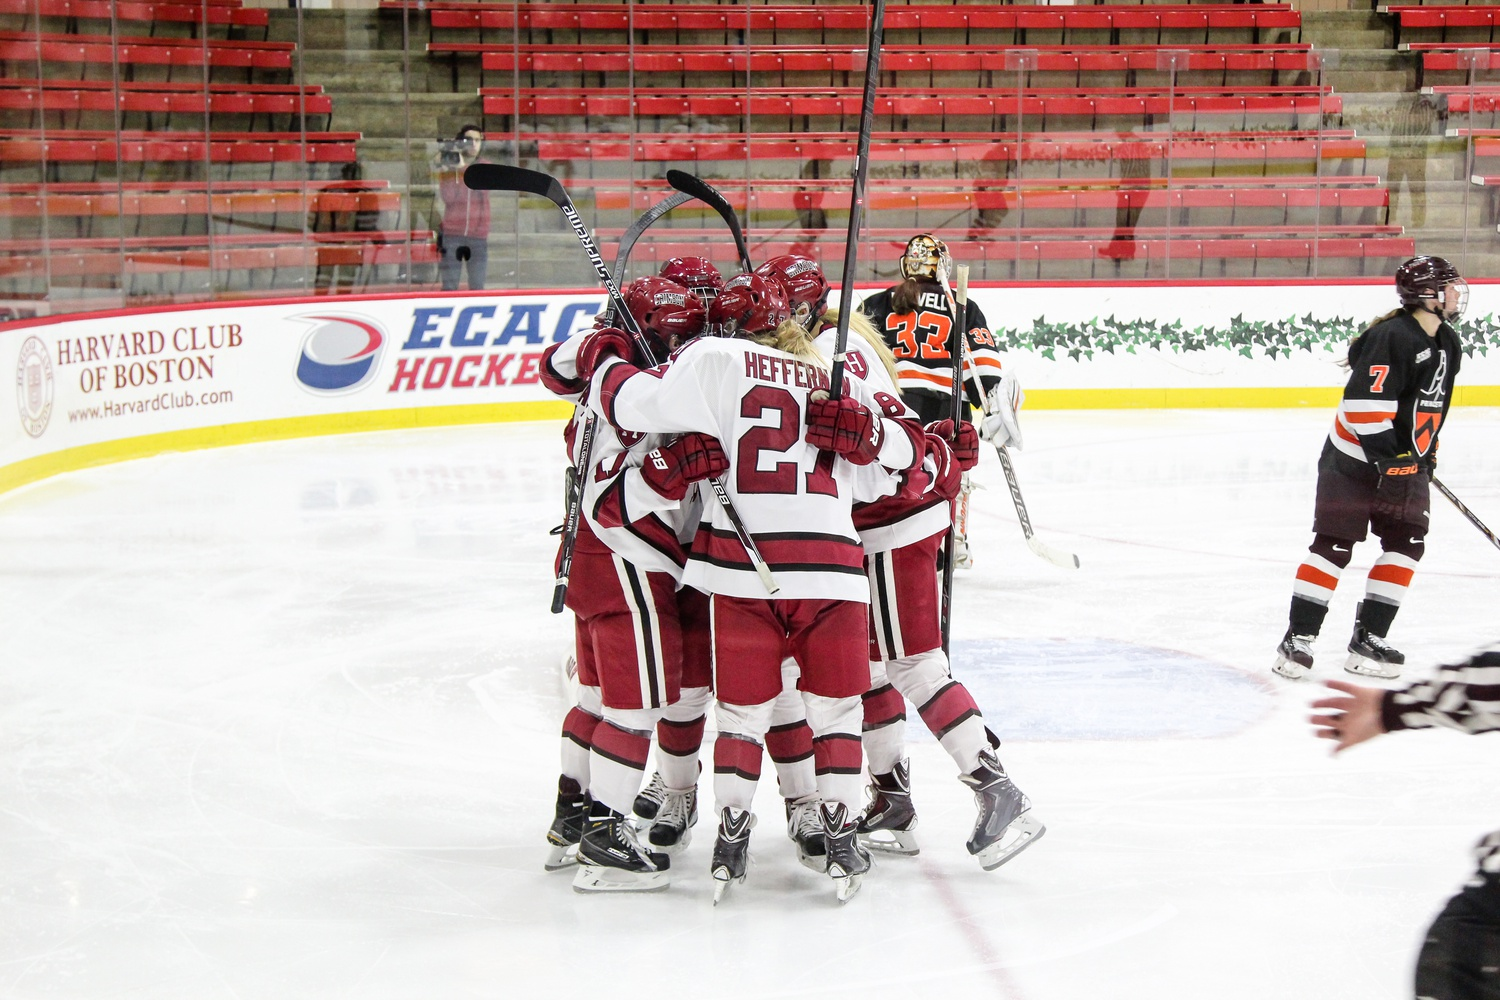 The Harvard women's hockey team may not have the record it wants heading into the bulk of conference play, but the Crimson looks to rebound when it returns in January.